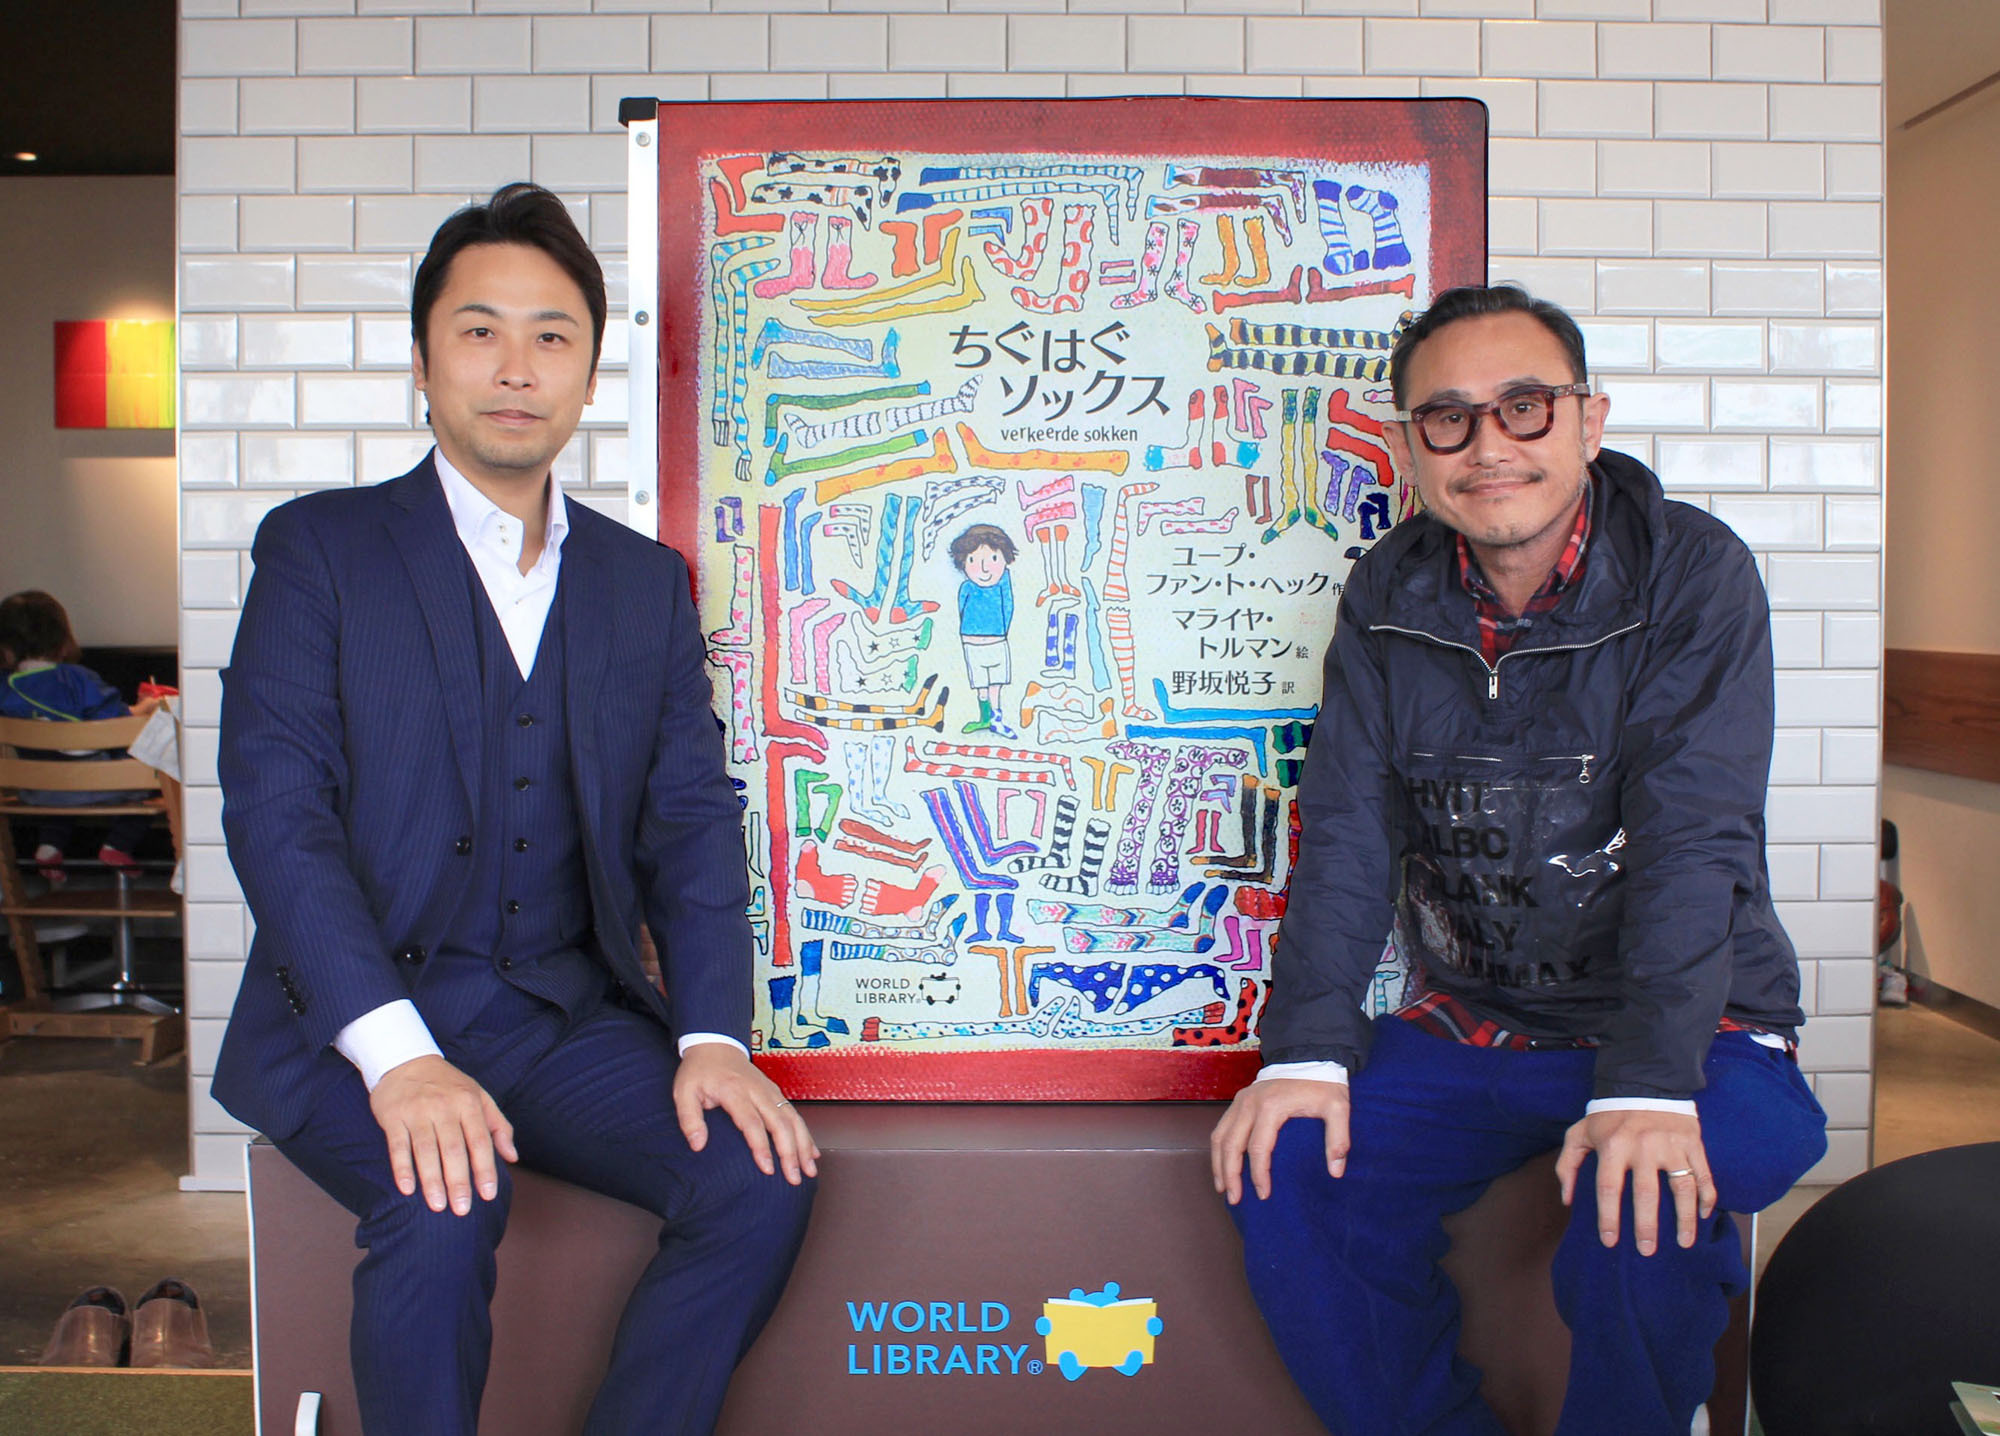 President of Smiles Co. Masamichi Toyama (right) poses with Shinsaku Asano, CEO of World Library, in front of an oversized picture book. The 100 Spoons restaurant in Azamino, Kanagawa Prefecture (operated by Smiles Co.), hosted a storytelling event on March 13 with a foreign book that was translated into Japanese and printed extra large to amuse children. The restaurant is creating opportunities for children to socialize using translated foreign picture books. | WORLDLIBRARY